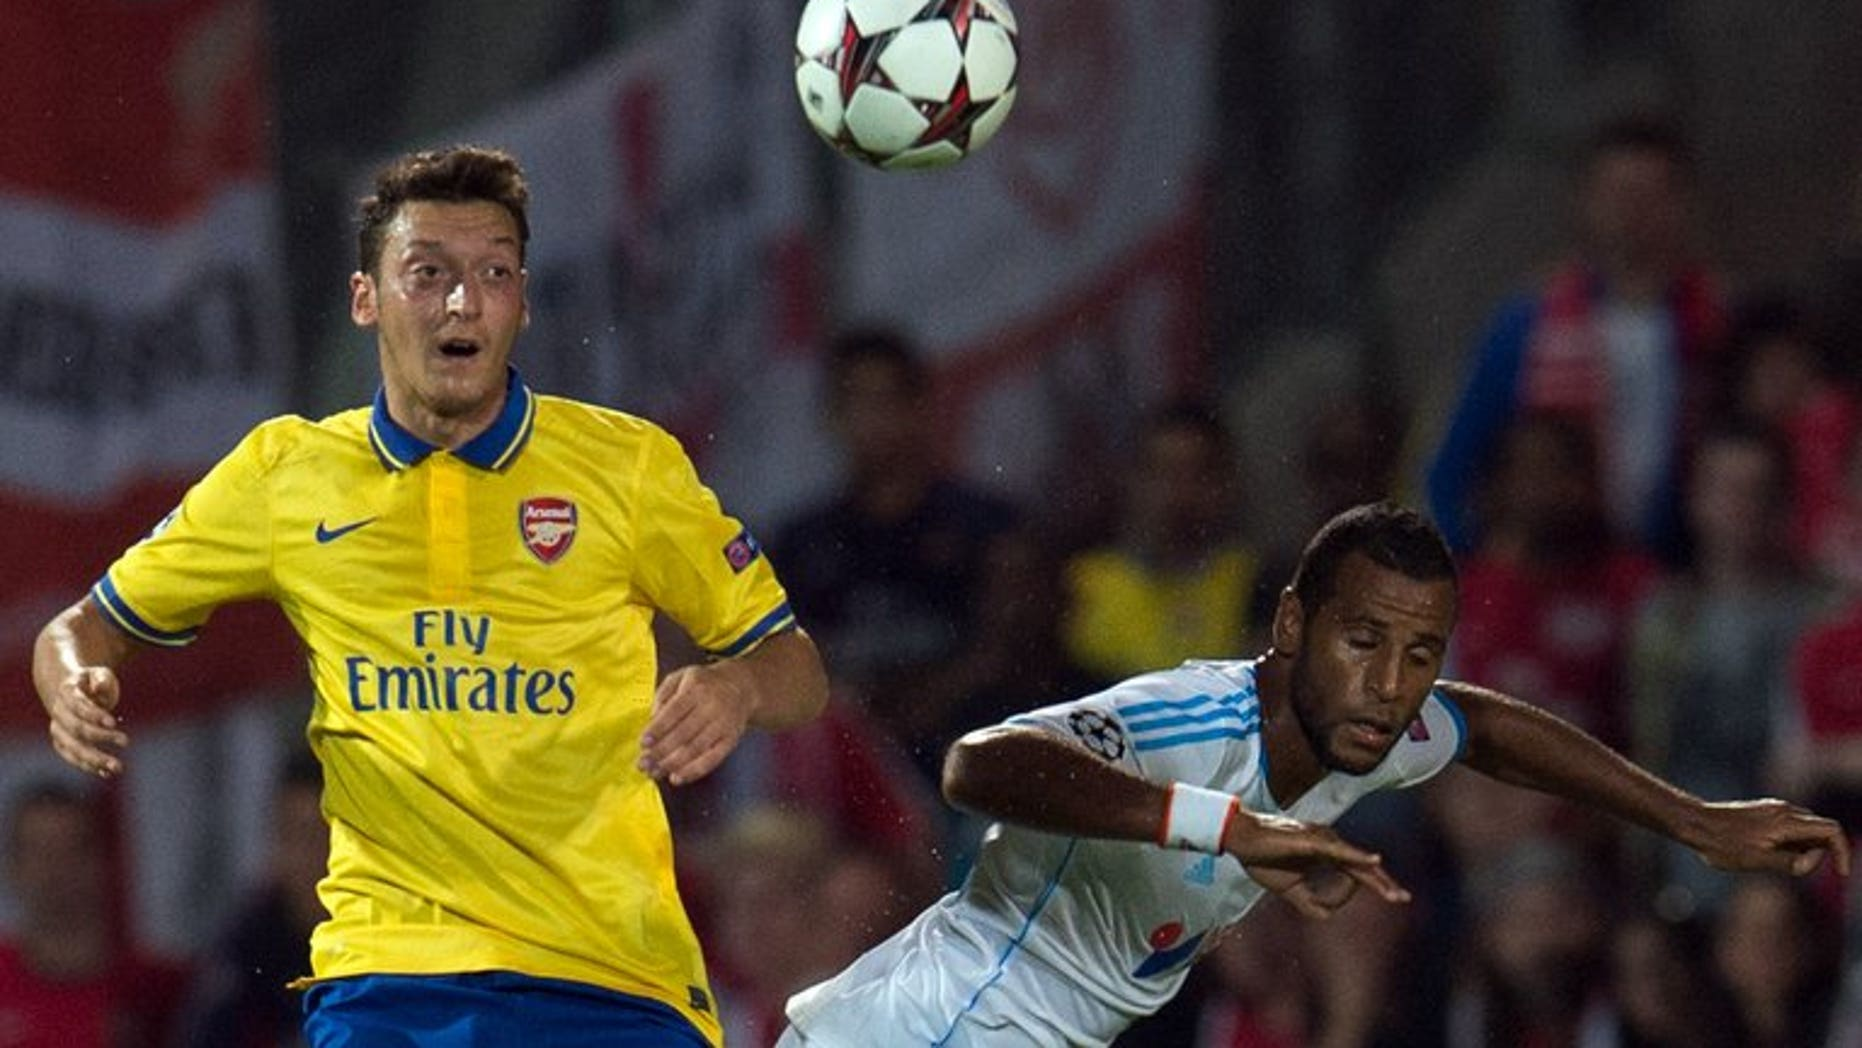 Mesut Ozil (left) clashes with Marseille's Jacques-Alaixys Romao at the Velodrome stadium on Wednesday. Arsenal manager Arsene Wenger has insisted club-record signing Mesut Ozil didn't leave Spanish giants Real Madrid because he wanted an easier life with the north London club.